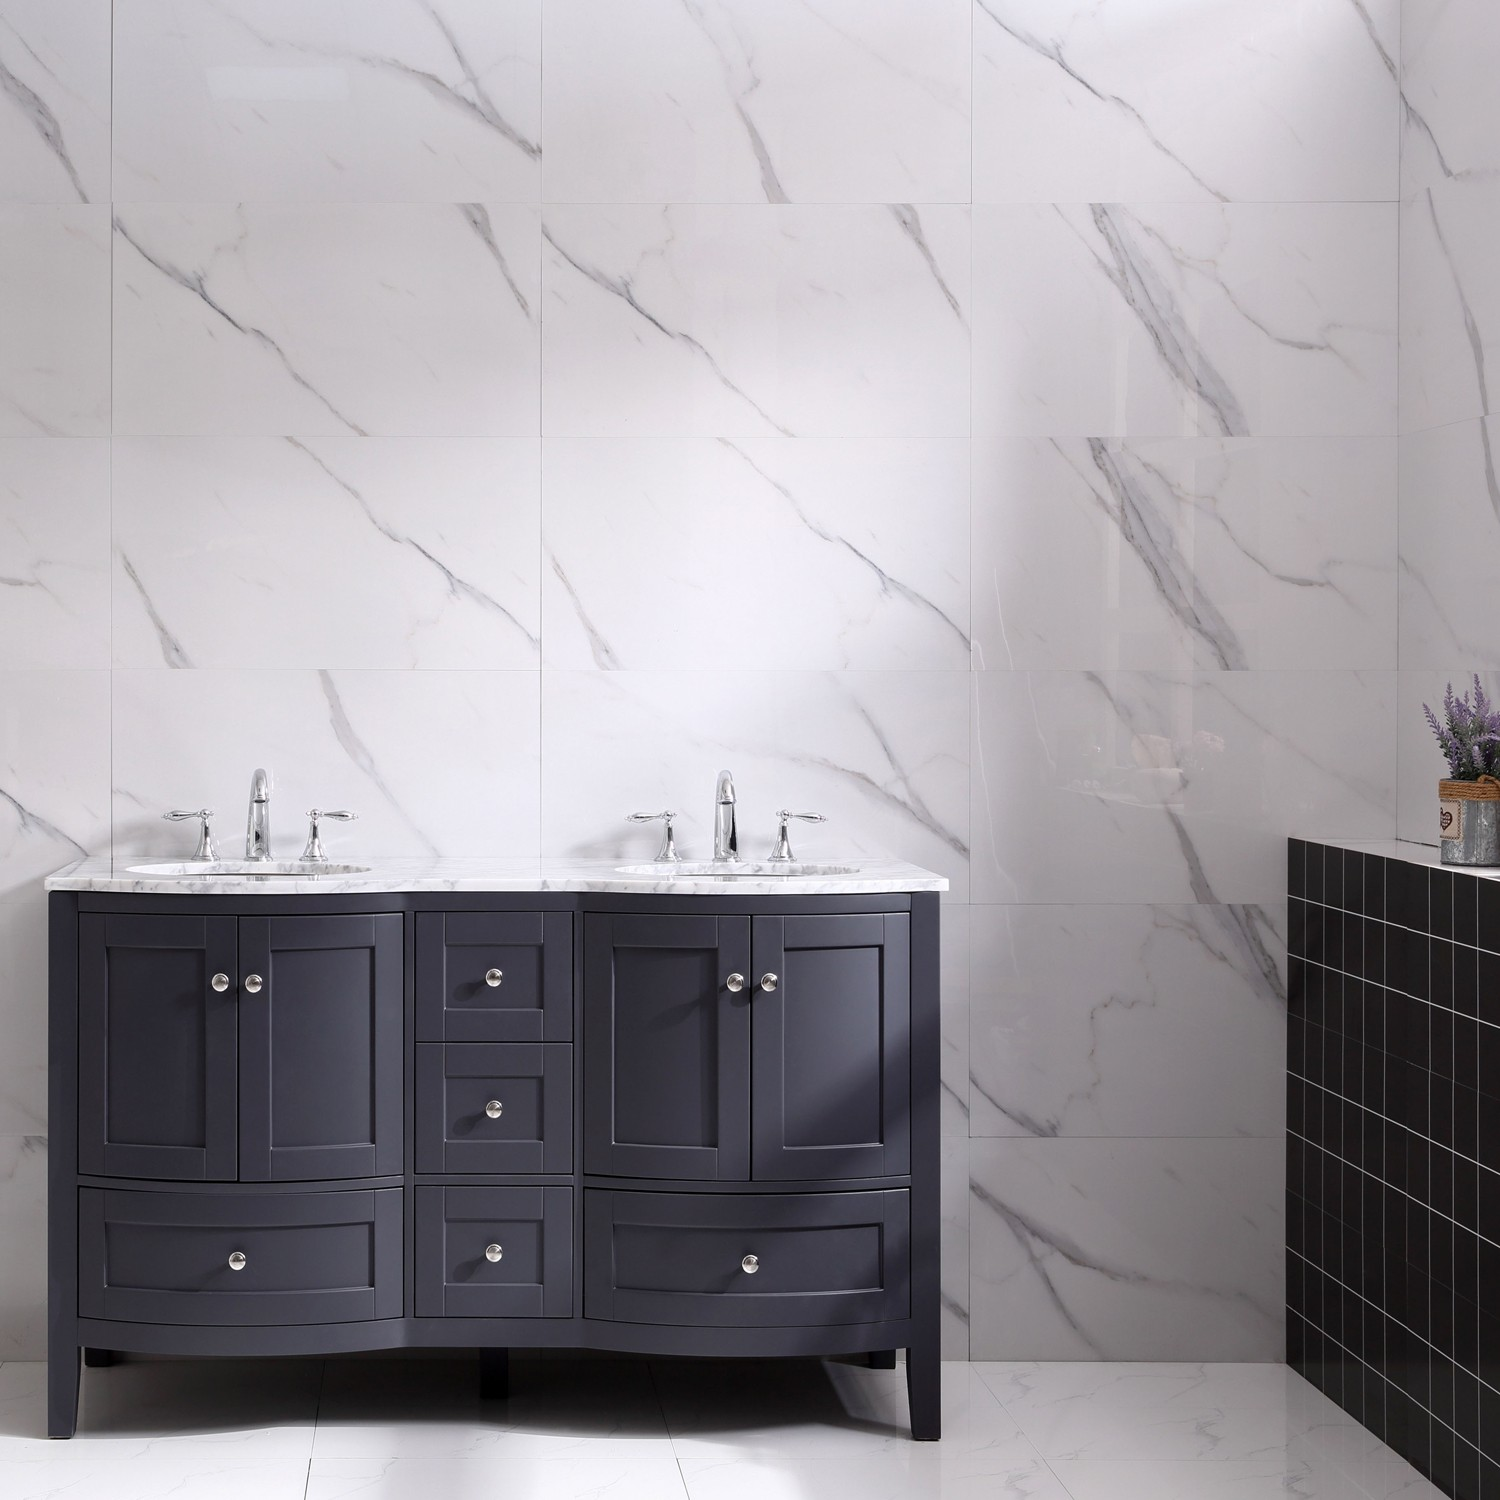 Eviva Stanton 60 Freestanding Double Sinks Bathroom Vanity in Dark Grey